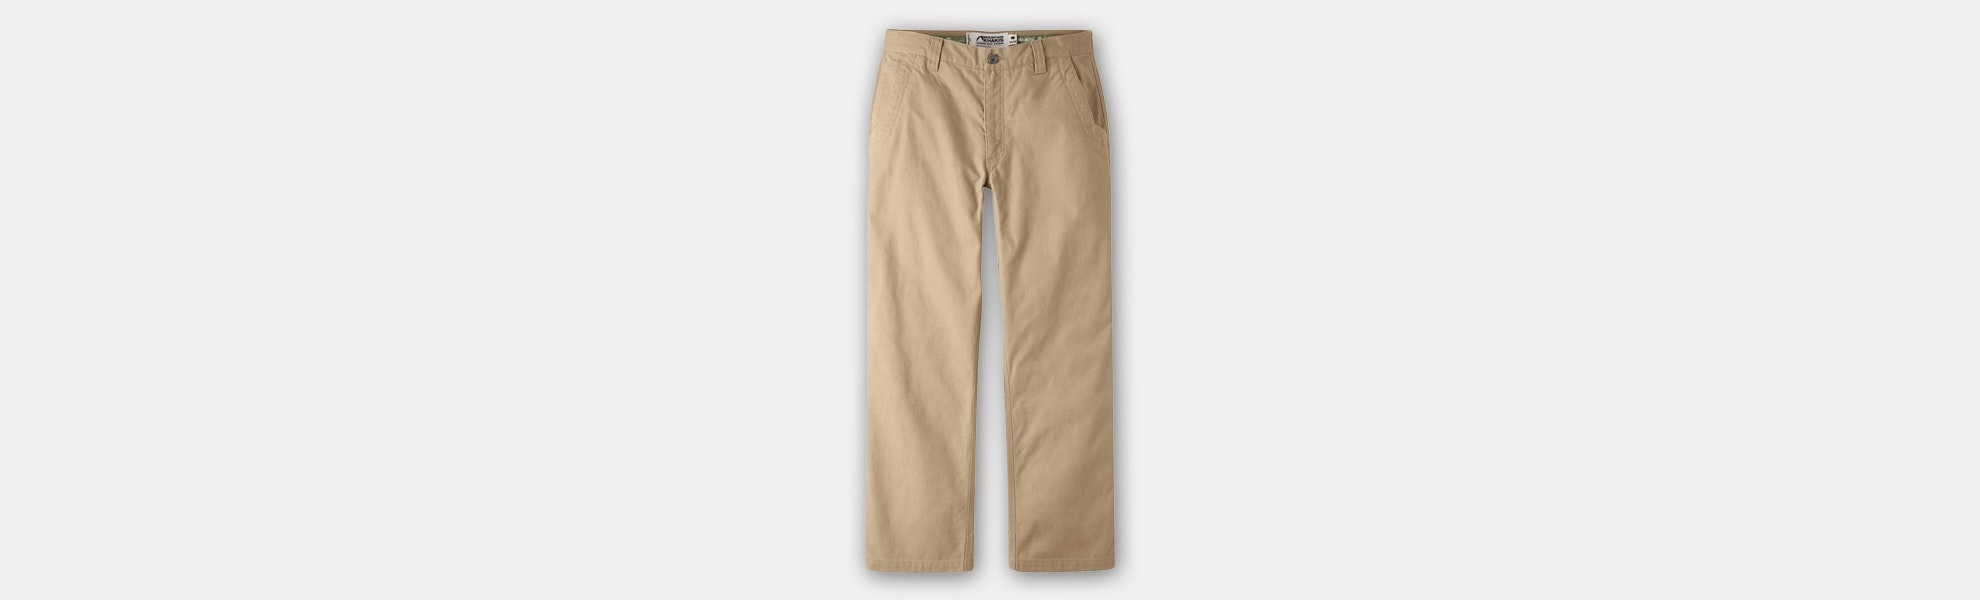 Mountain Khakis Original Mountain Men's Pants